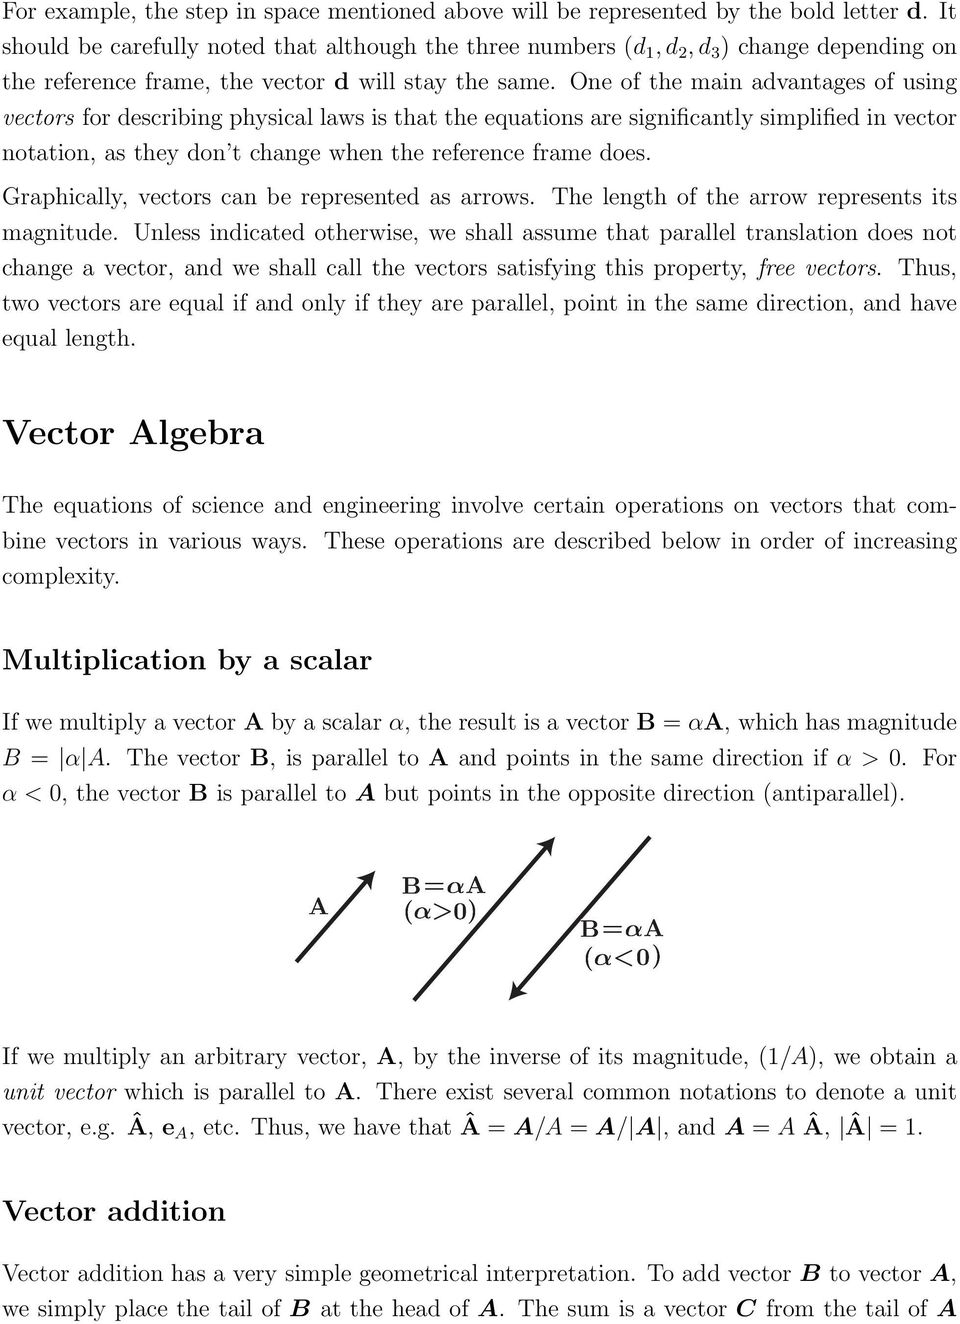 One of the main advantages of using vectors for describing physical laws is that the equations are significantly simplified in vector notation, as they don t change when the reference frame does.